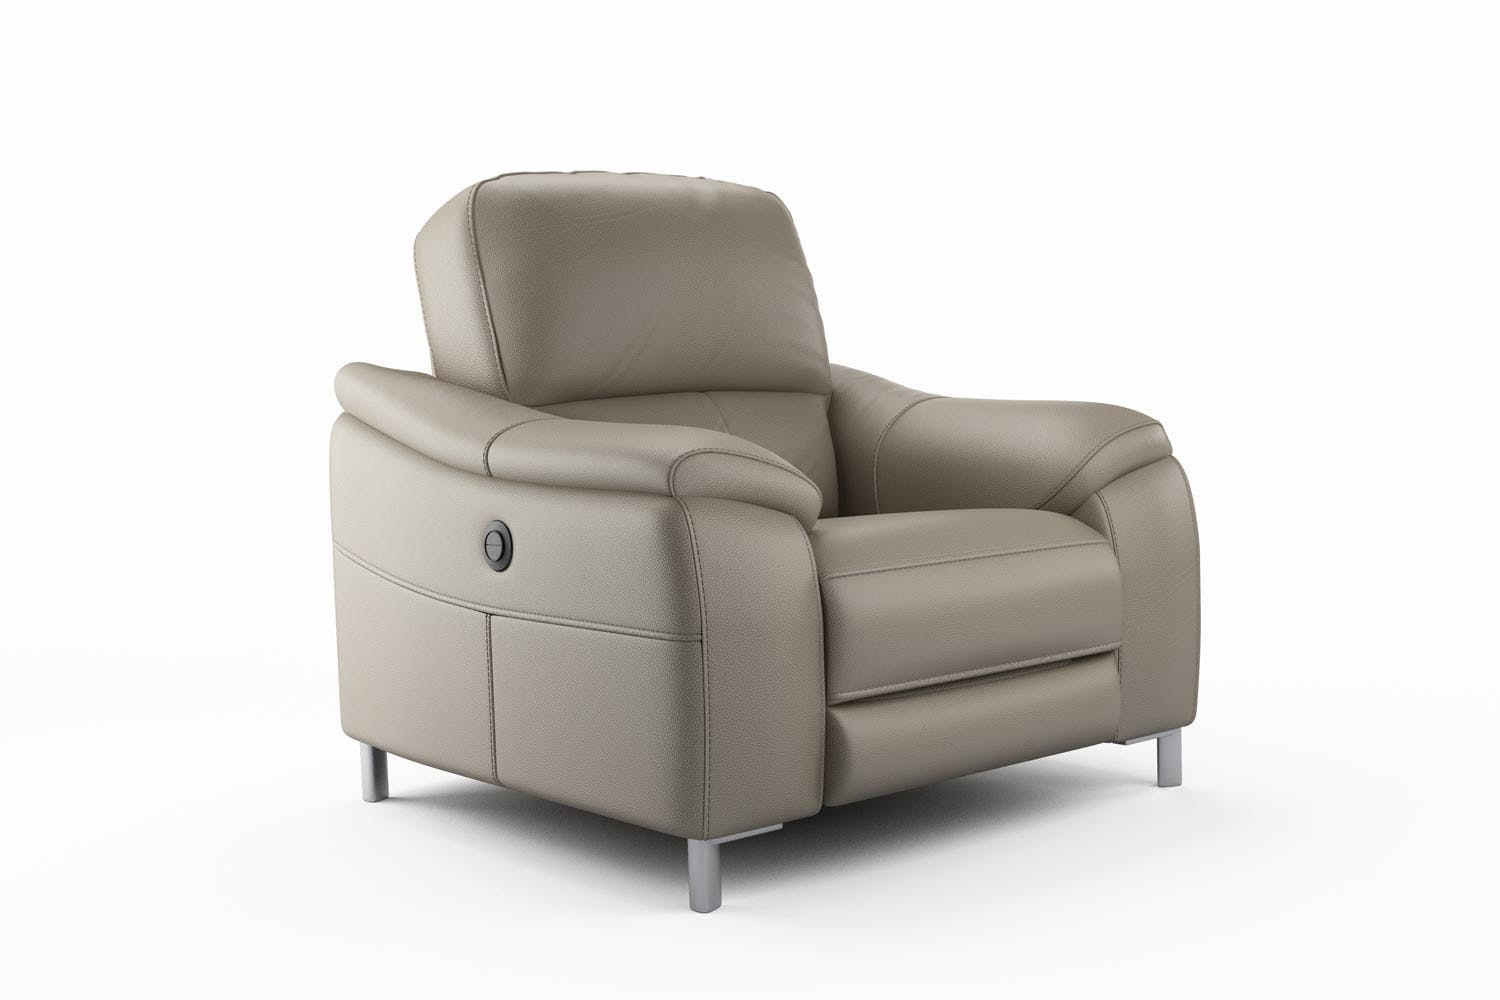 Yvezza Electric Recliner Chair | Grey